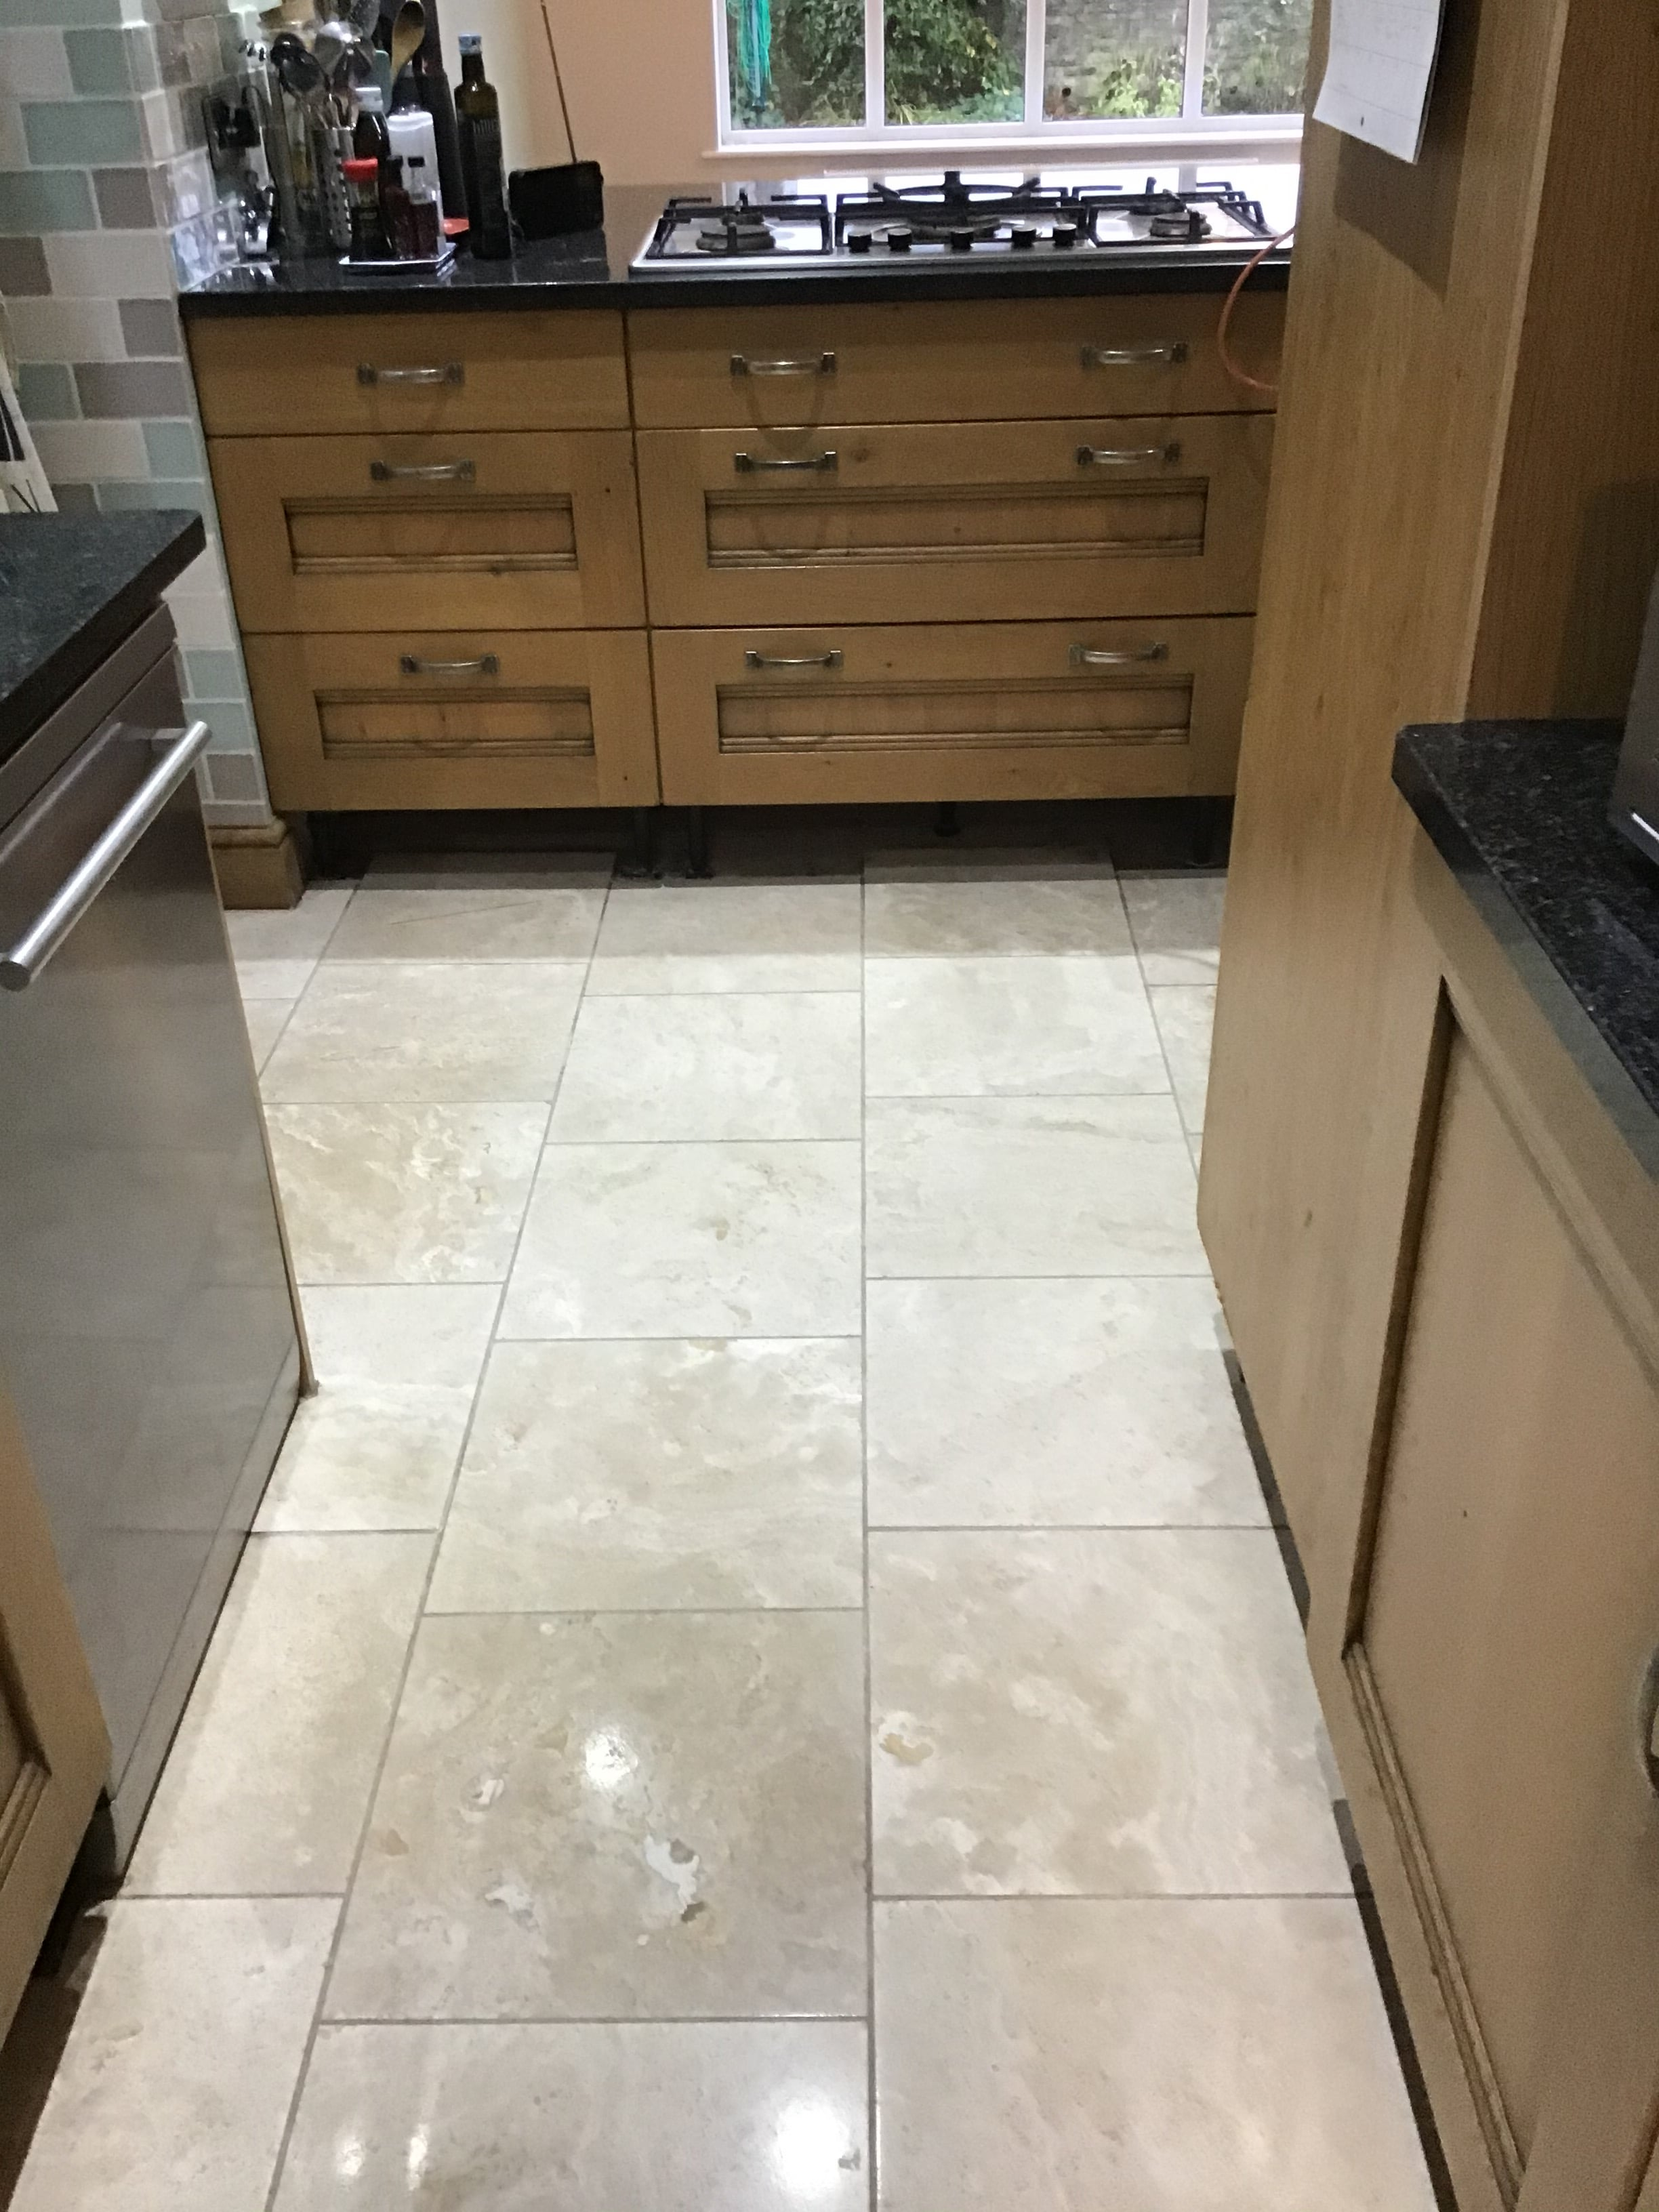 Polished Travertine Kitchen Floor After Renovation Brixworth